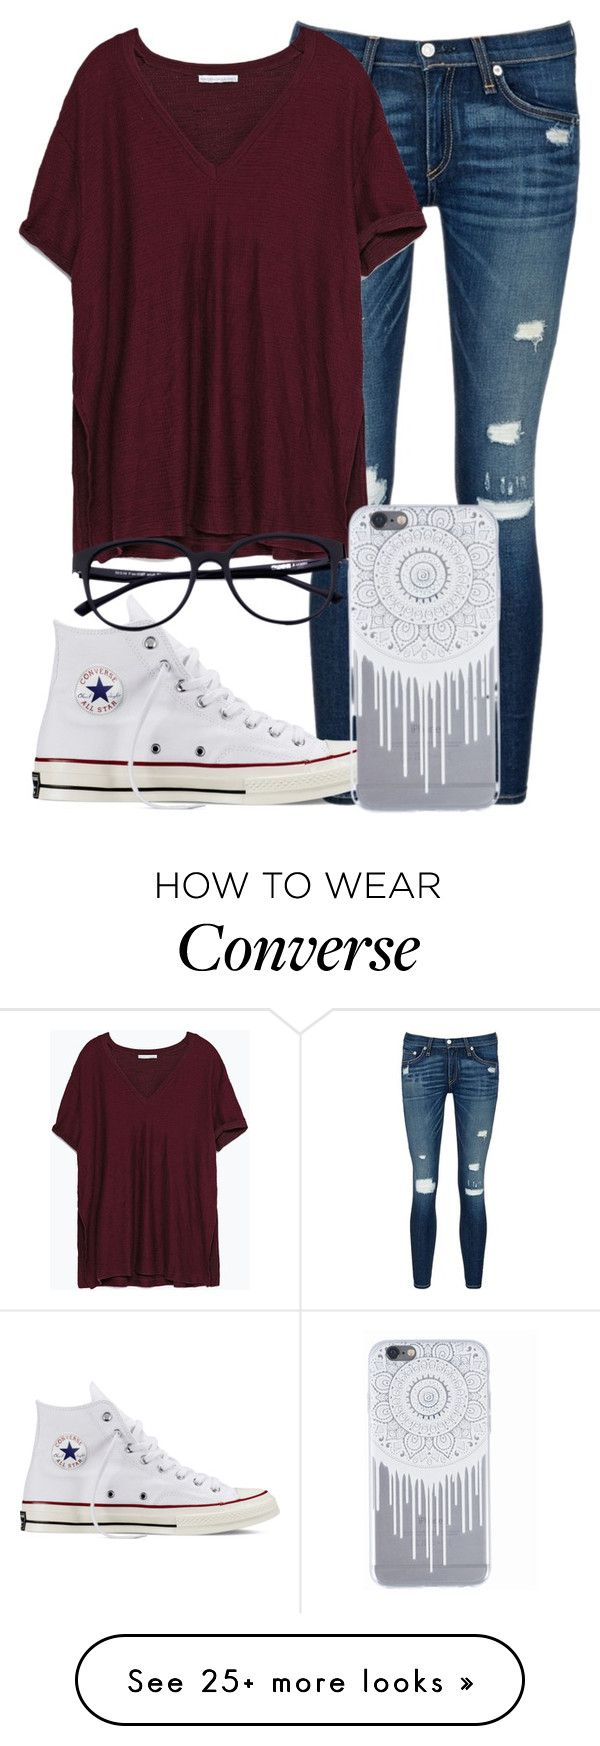 """»»»Sounds of Love«««"" by mallorimae on Polyvore featuring rag & bone/JEAN, Zara and Converse"